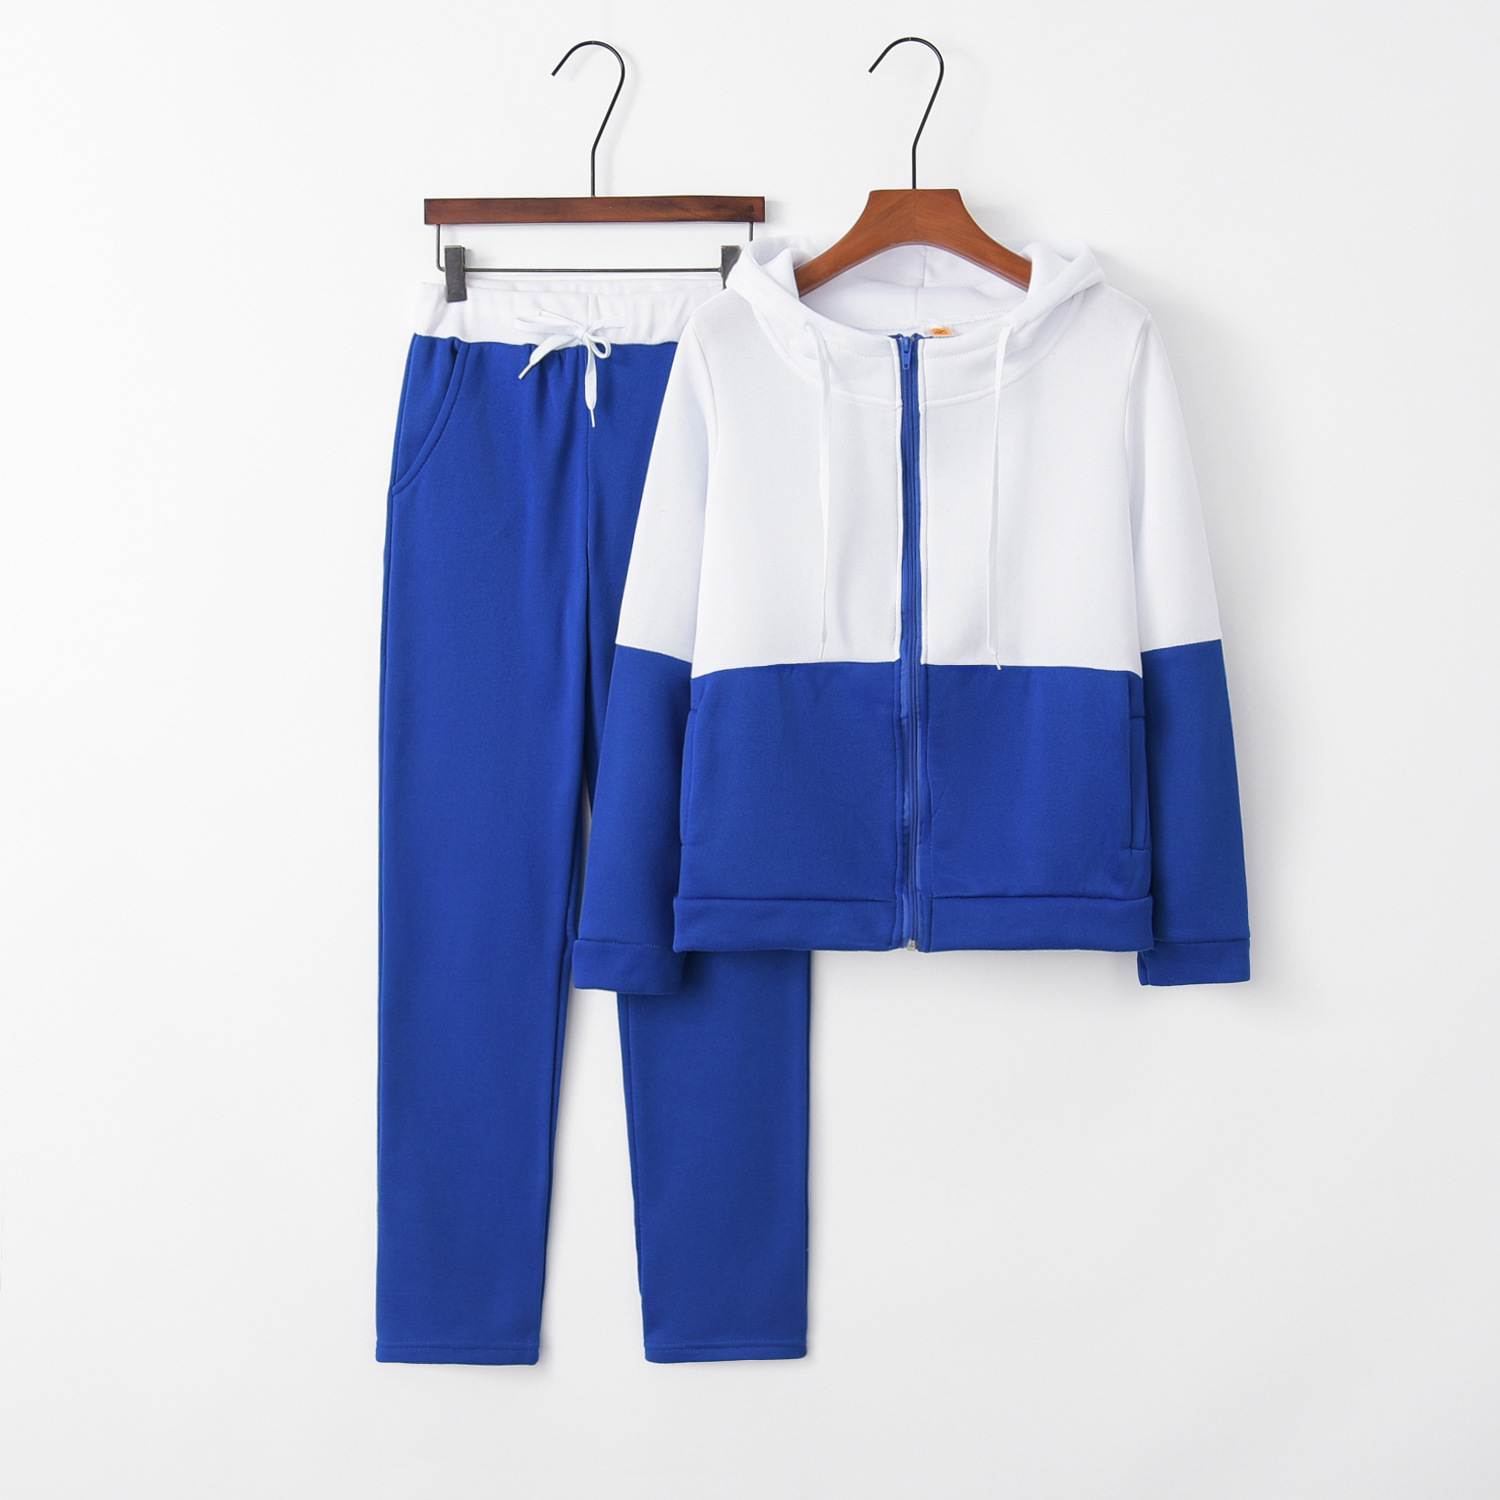 Blue outfit tracksuit for women hoodies Two Piece Set sportsuit Top And Pant suit co-ord Sweat Casual female Clothes 2019 2PCS